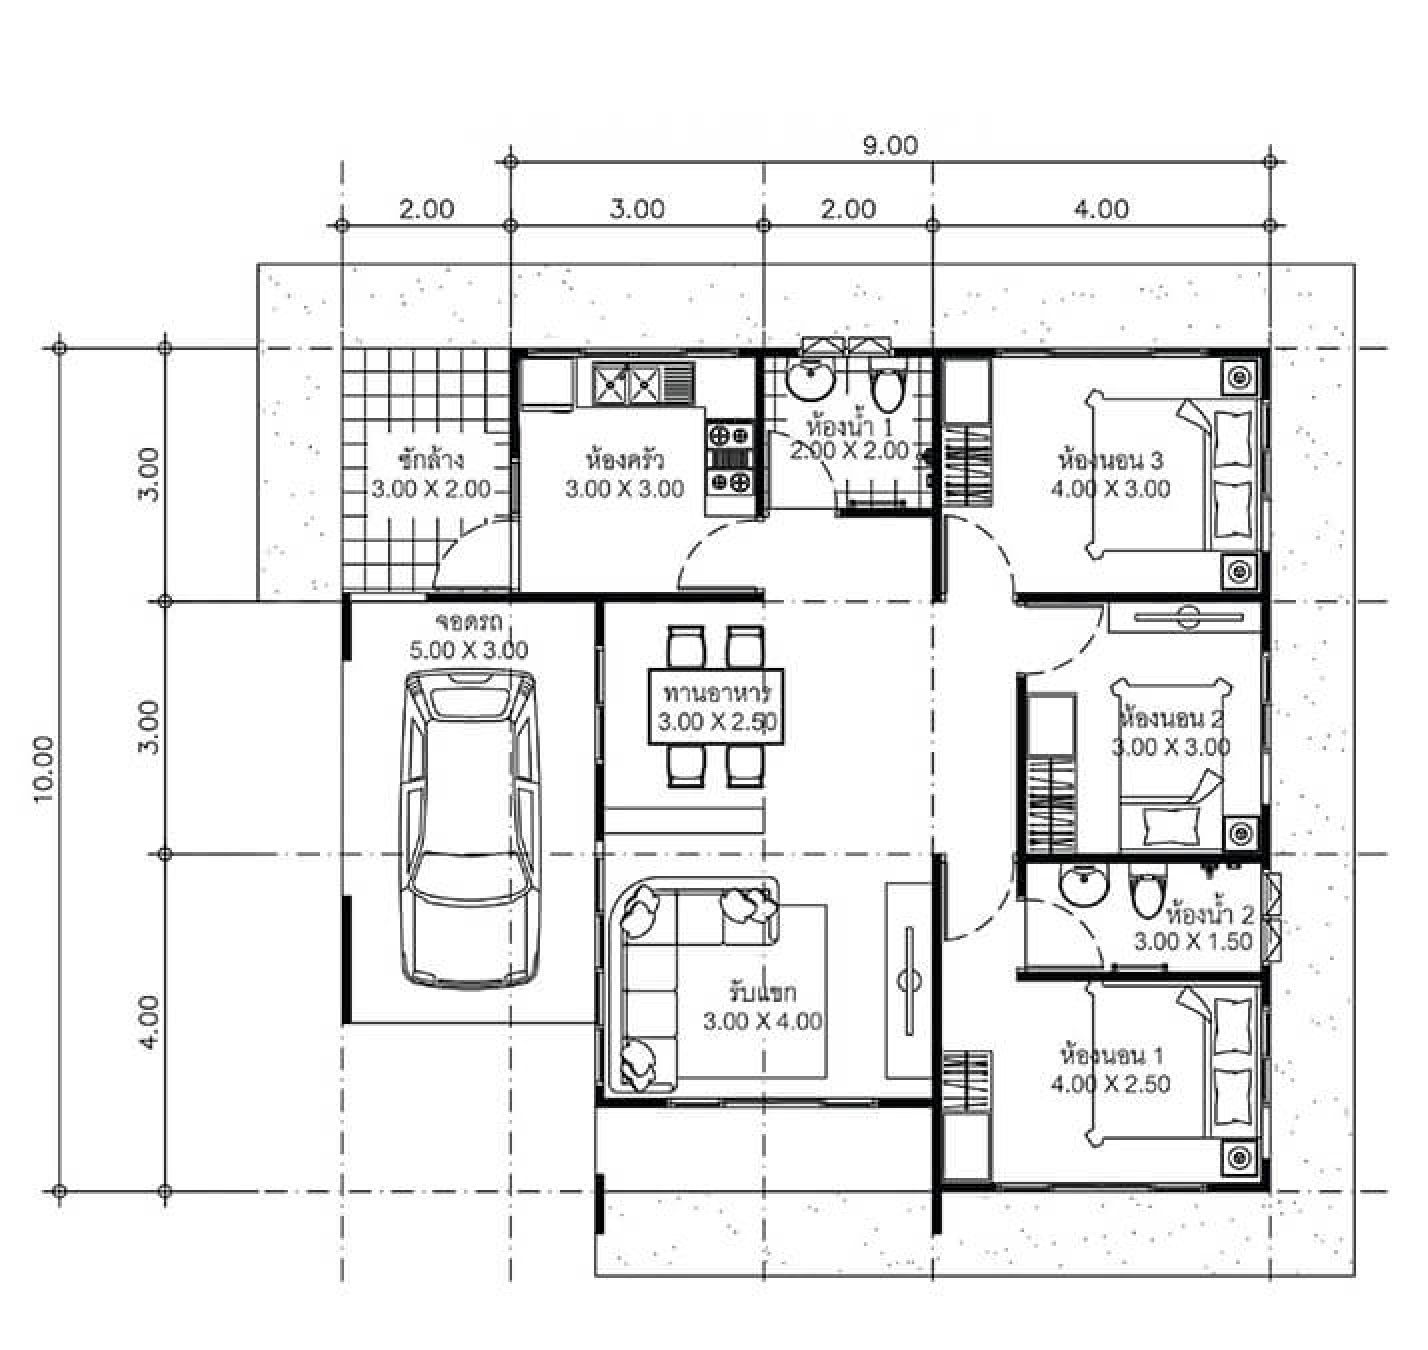 House Plans Idea 11x10 With 3 Bedrooms Sam House Plans Little House Plans Floor Plan Design House Plans